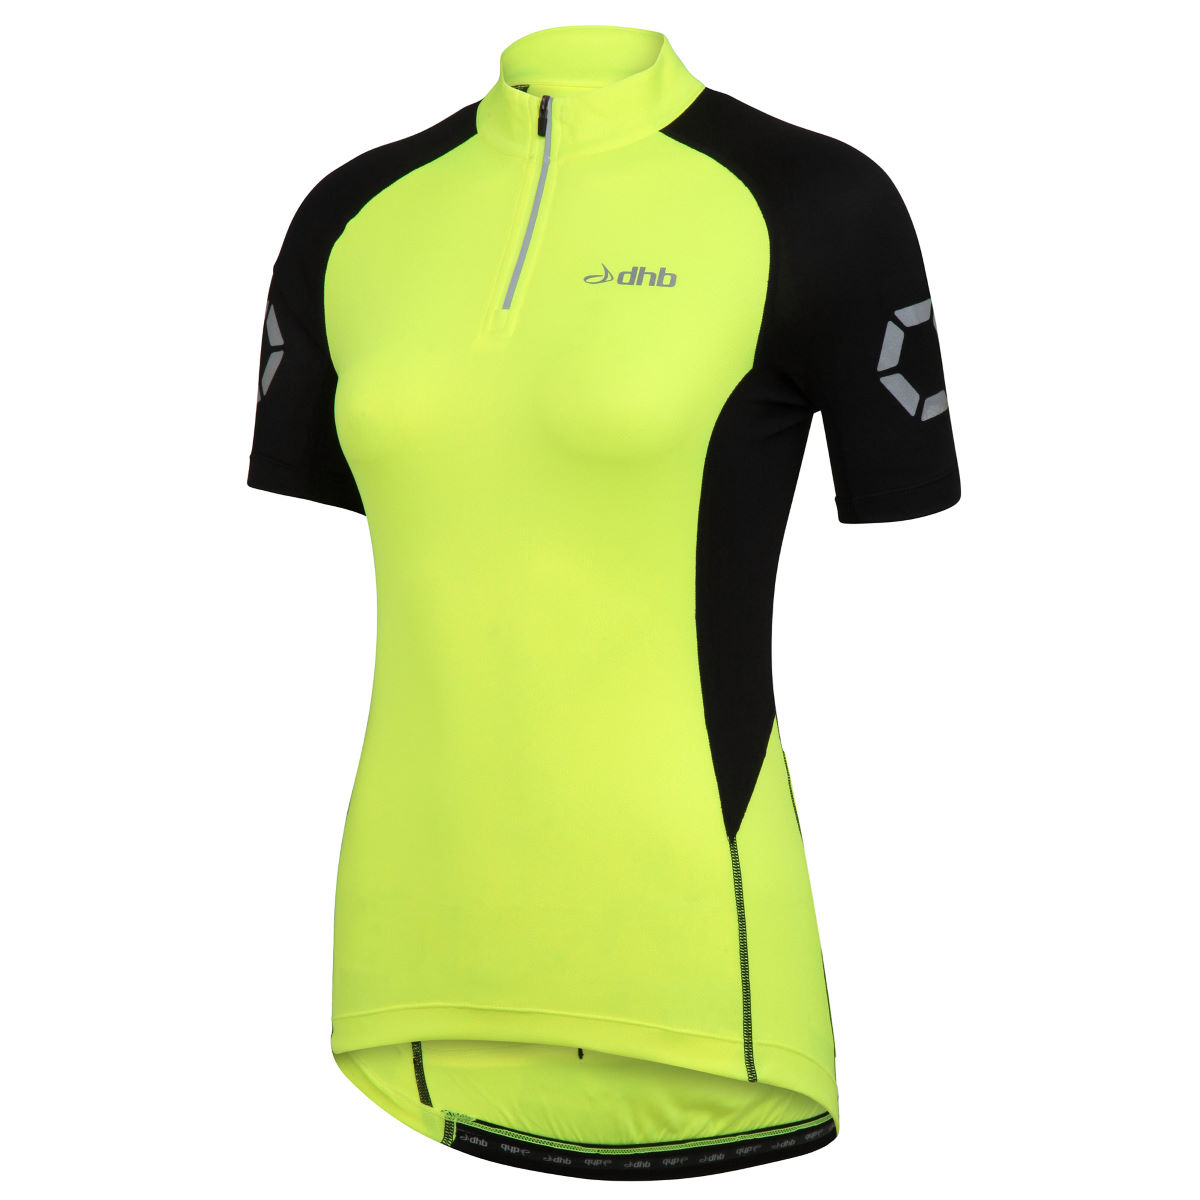 Maillot Femme dhb Flashlight (manches courtes) - 16 UK Fluro Yellow